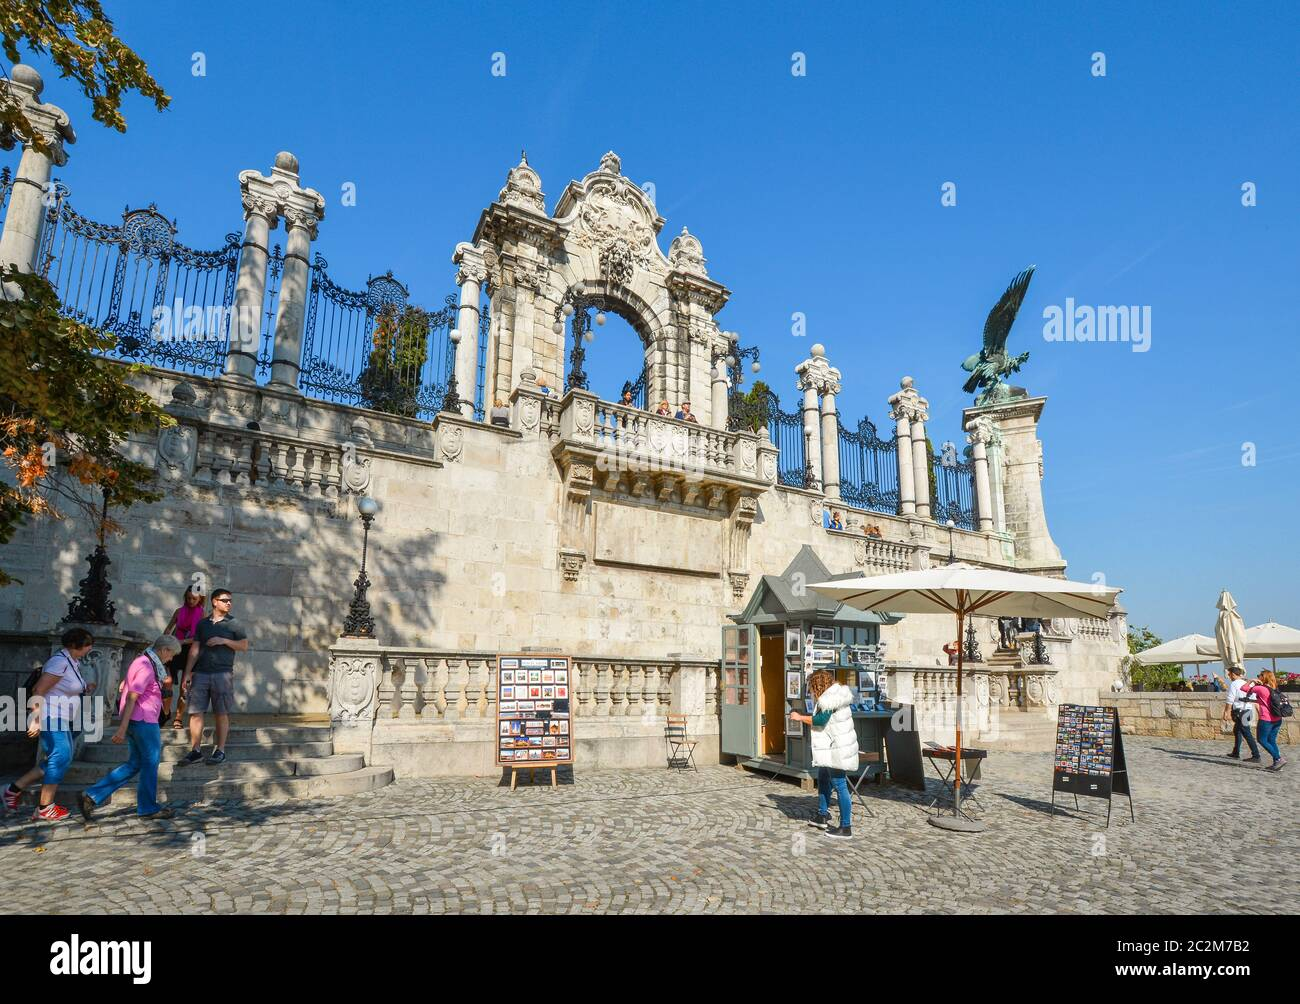 A souvenir vendor sells prints under the Turul statue at the Buda Castle Complex in Budapest, Hungary Stock Photo